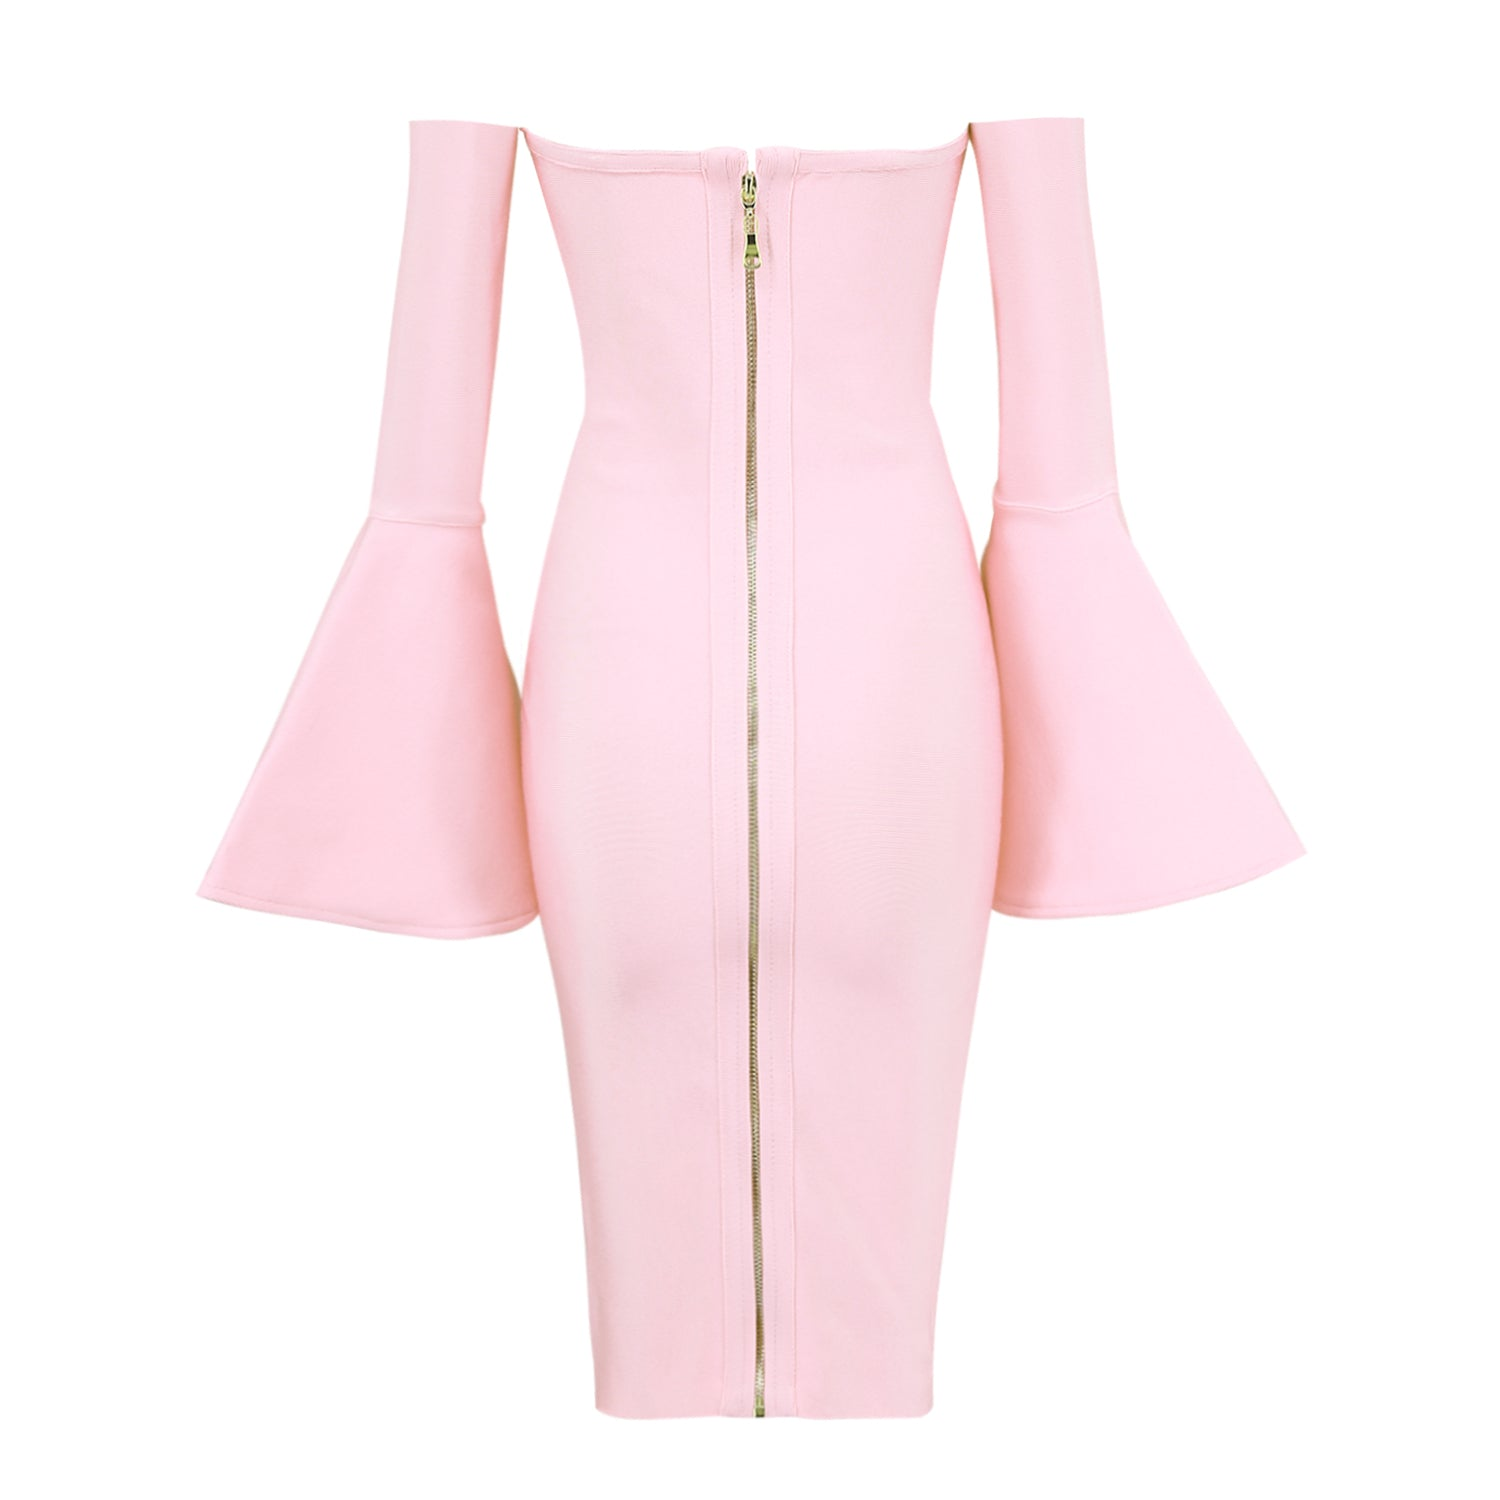 Pink Strapless Long Sleeves Bandage Dress